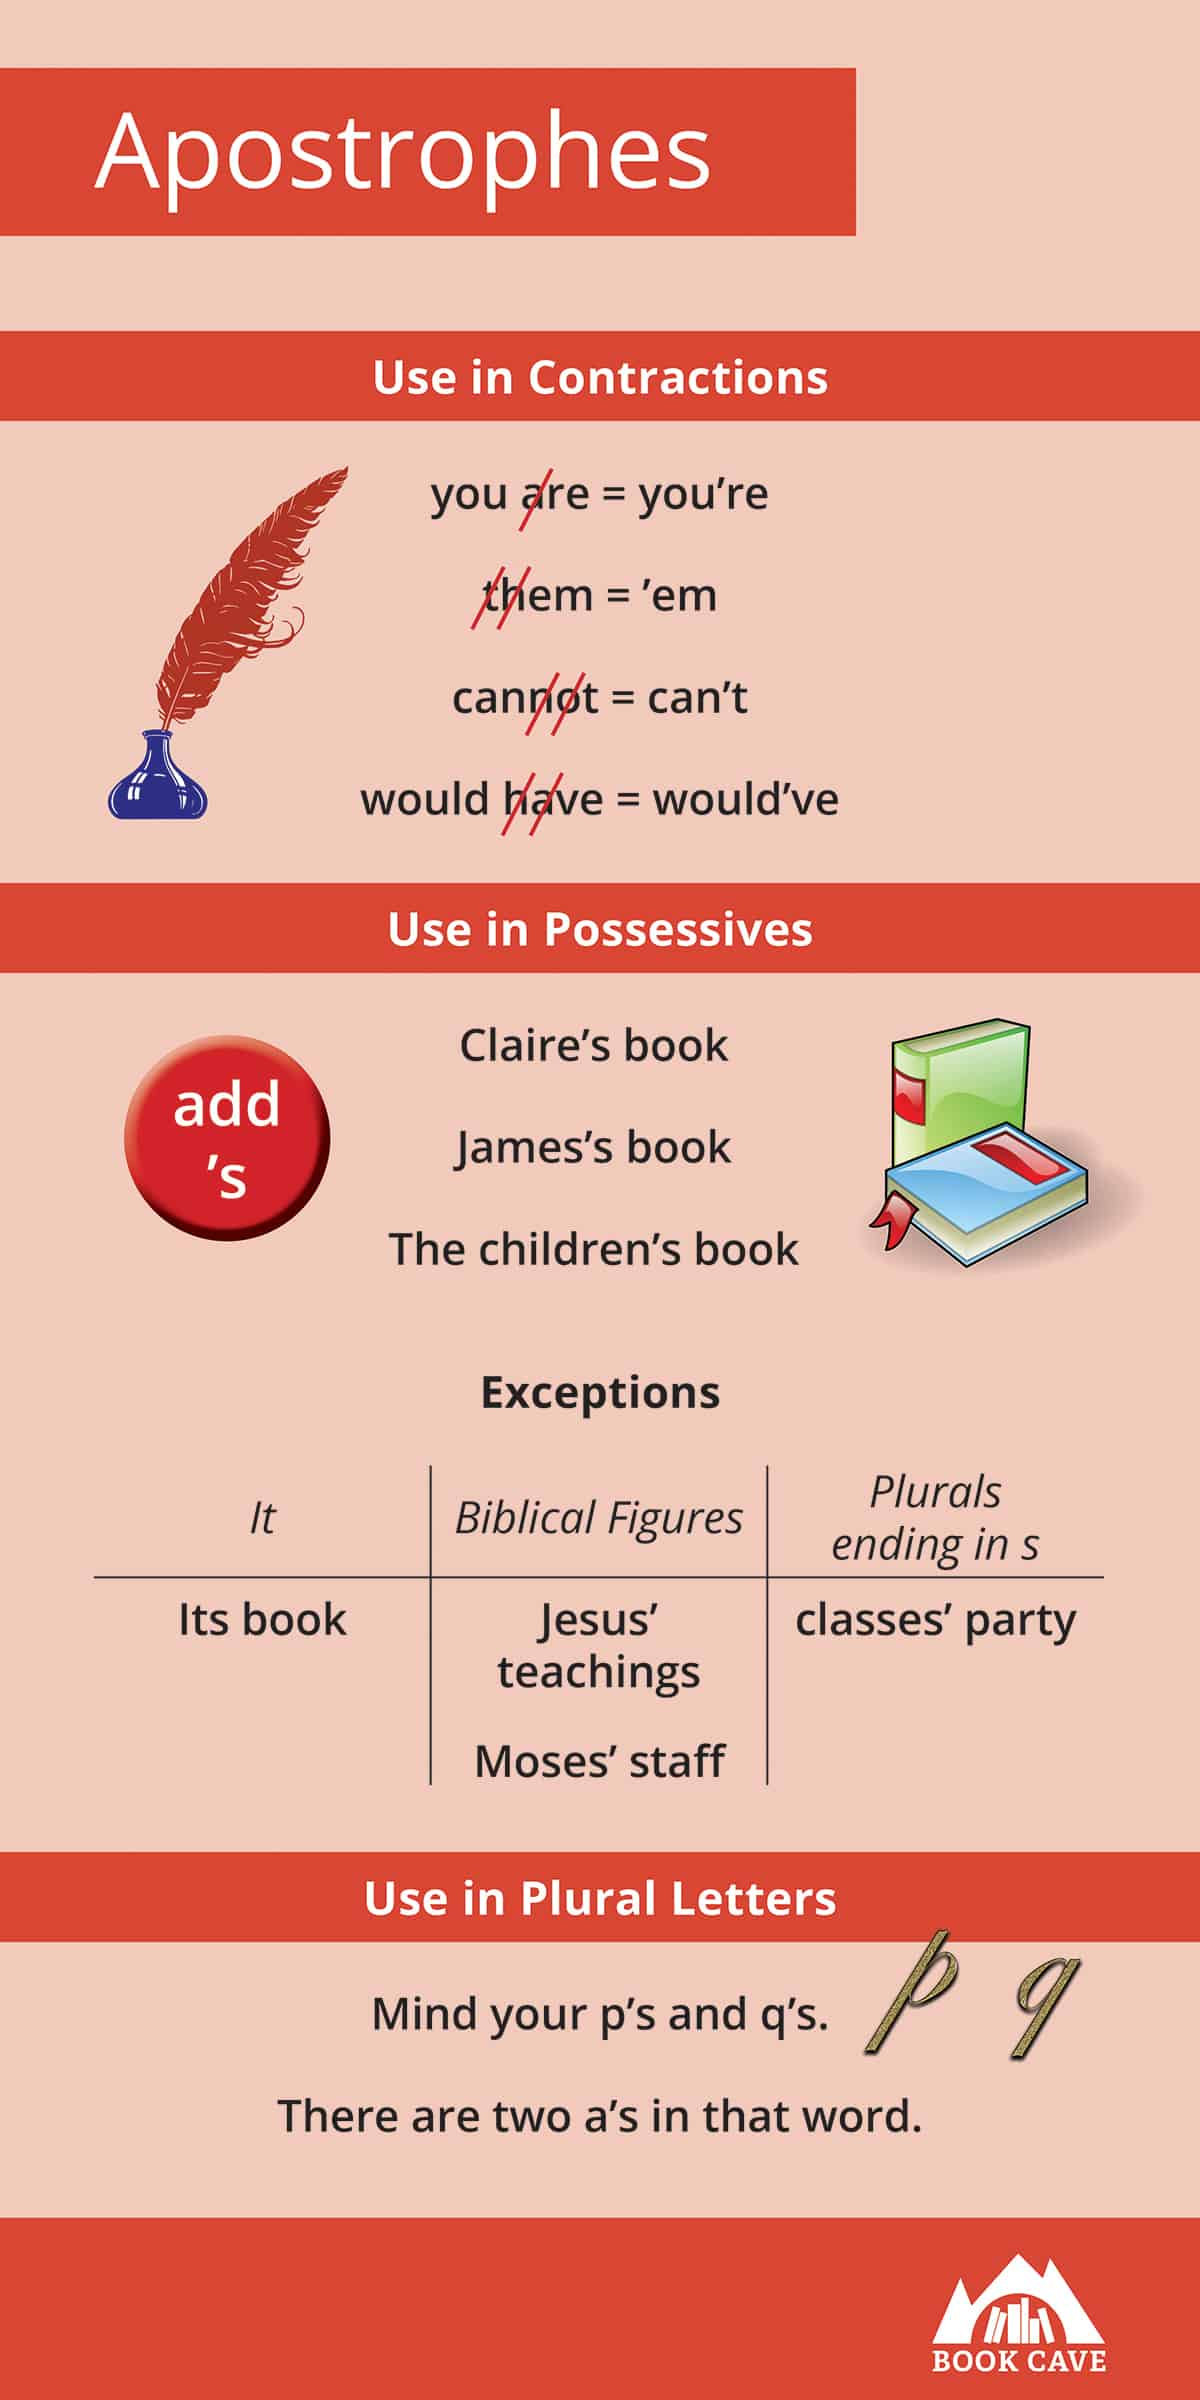 infographic on apostrophes